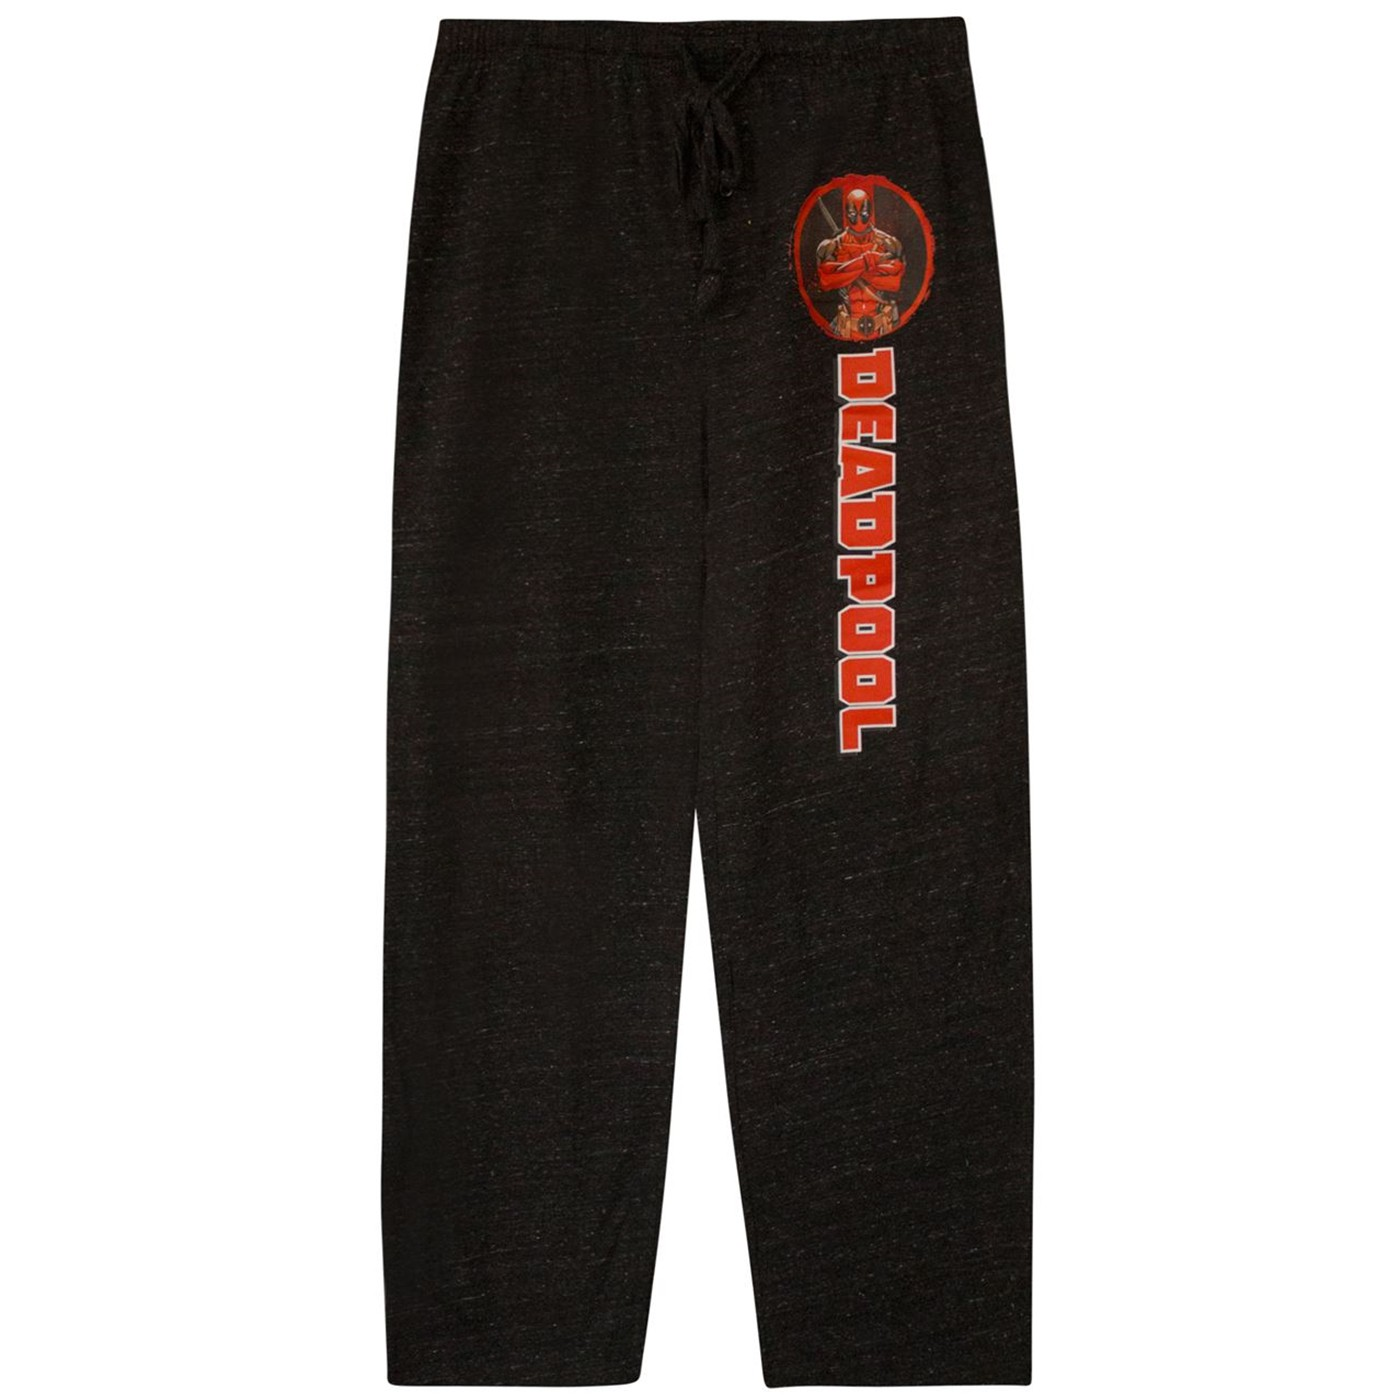 Deadpool Black Heather Sleep Pants